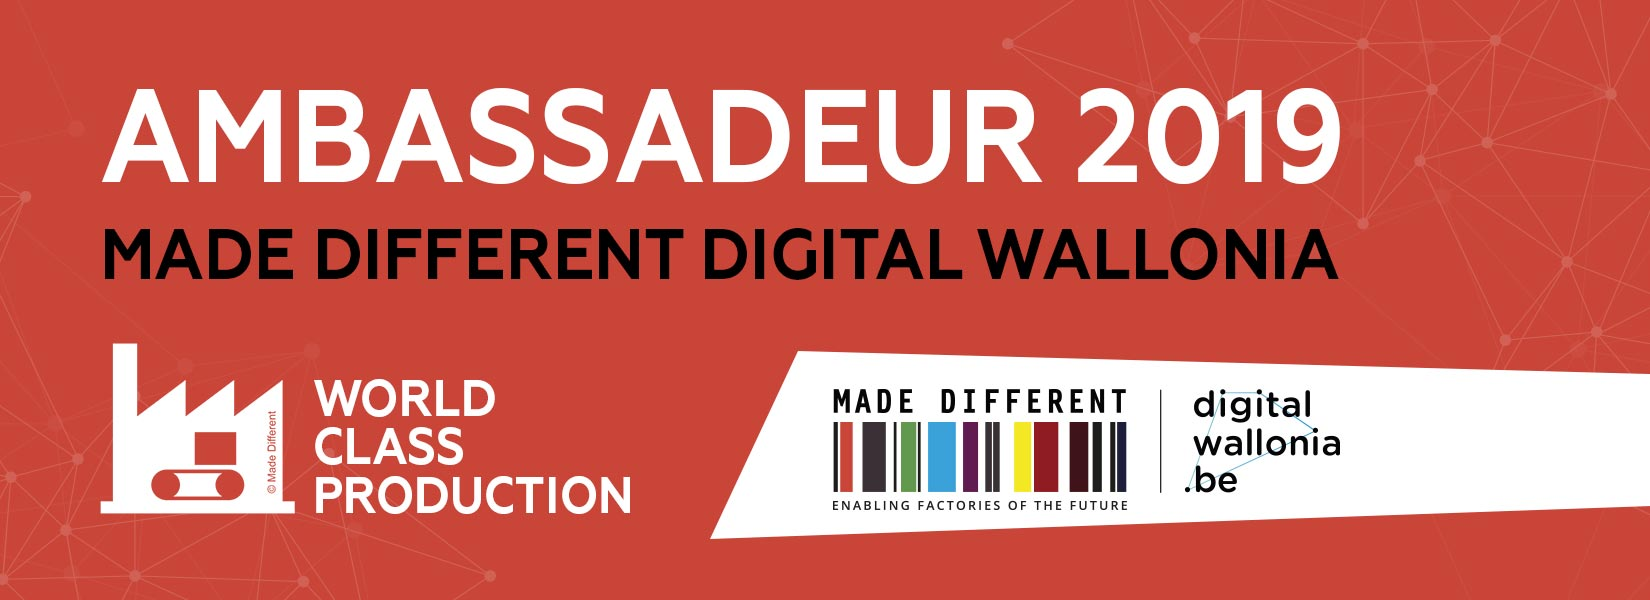 Digital Wallonia Made Different - Schmitz Digital Printing Ambassadeur 2019 WORLD CLASS PRODUCTION